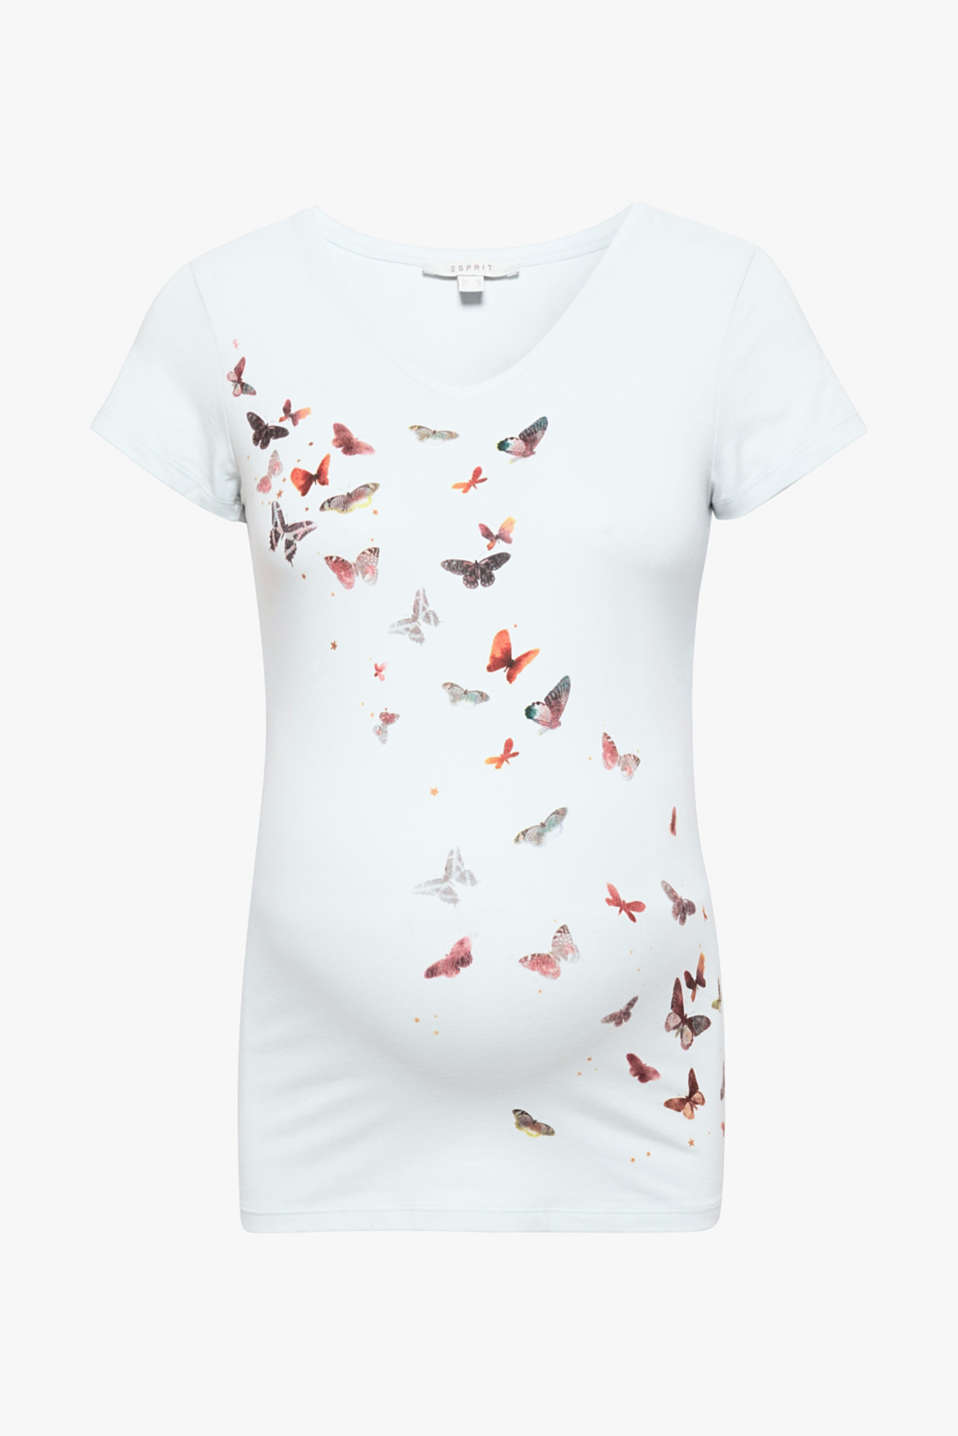 The spring-ready butterfly print on the front makes this maternity top a comfortable companion with stretch.